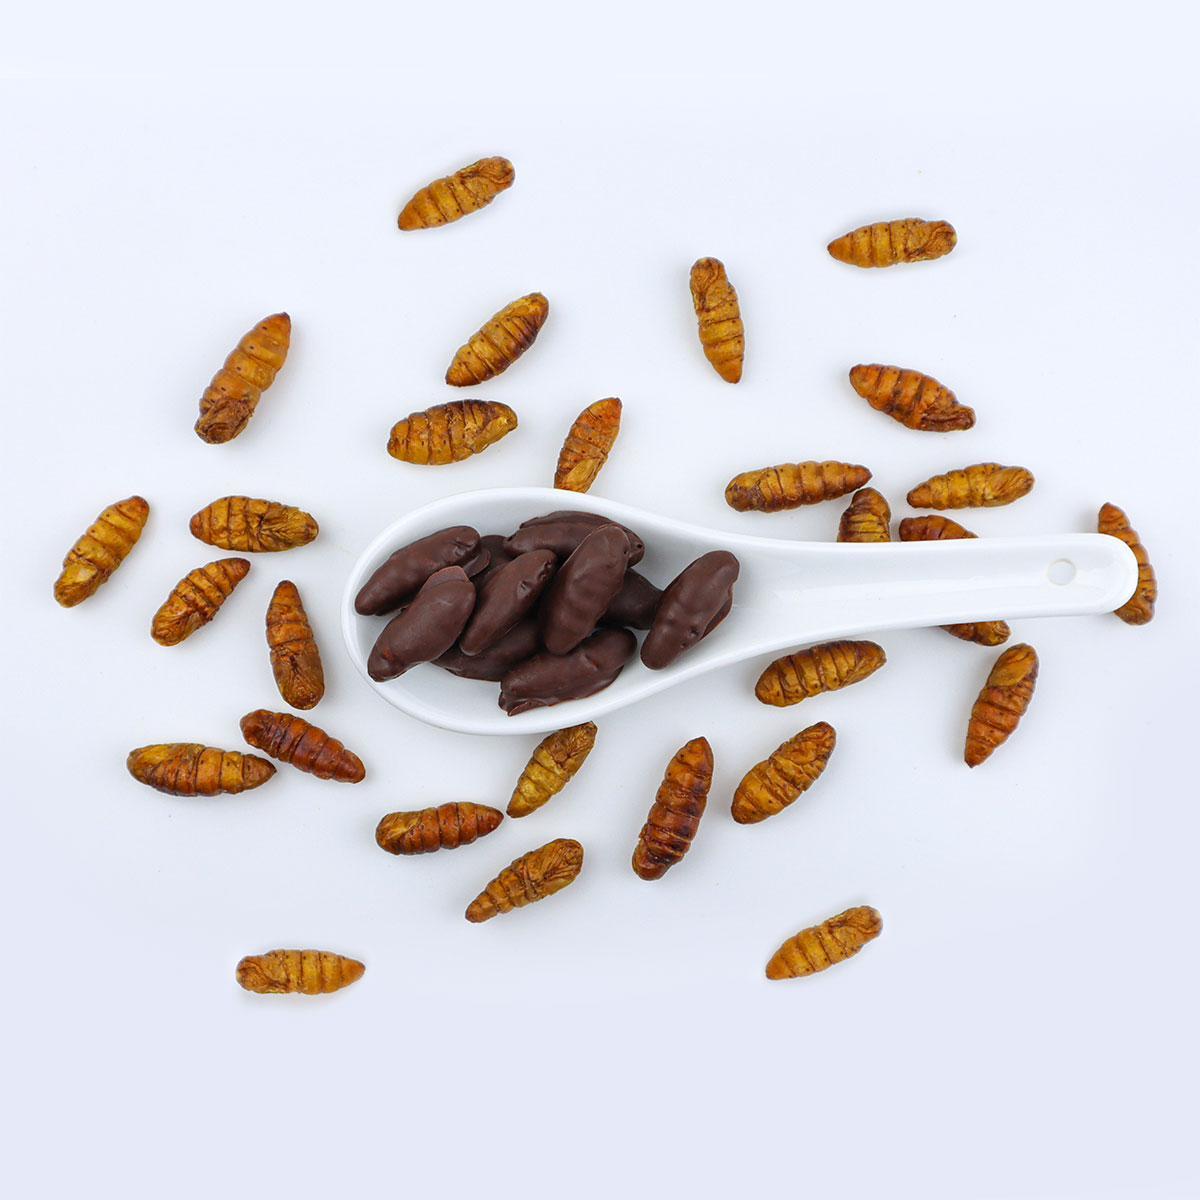 chocolate covered silkworm pupae